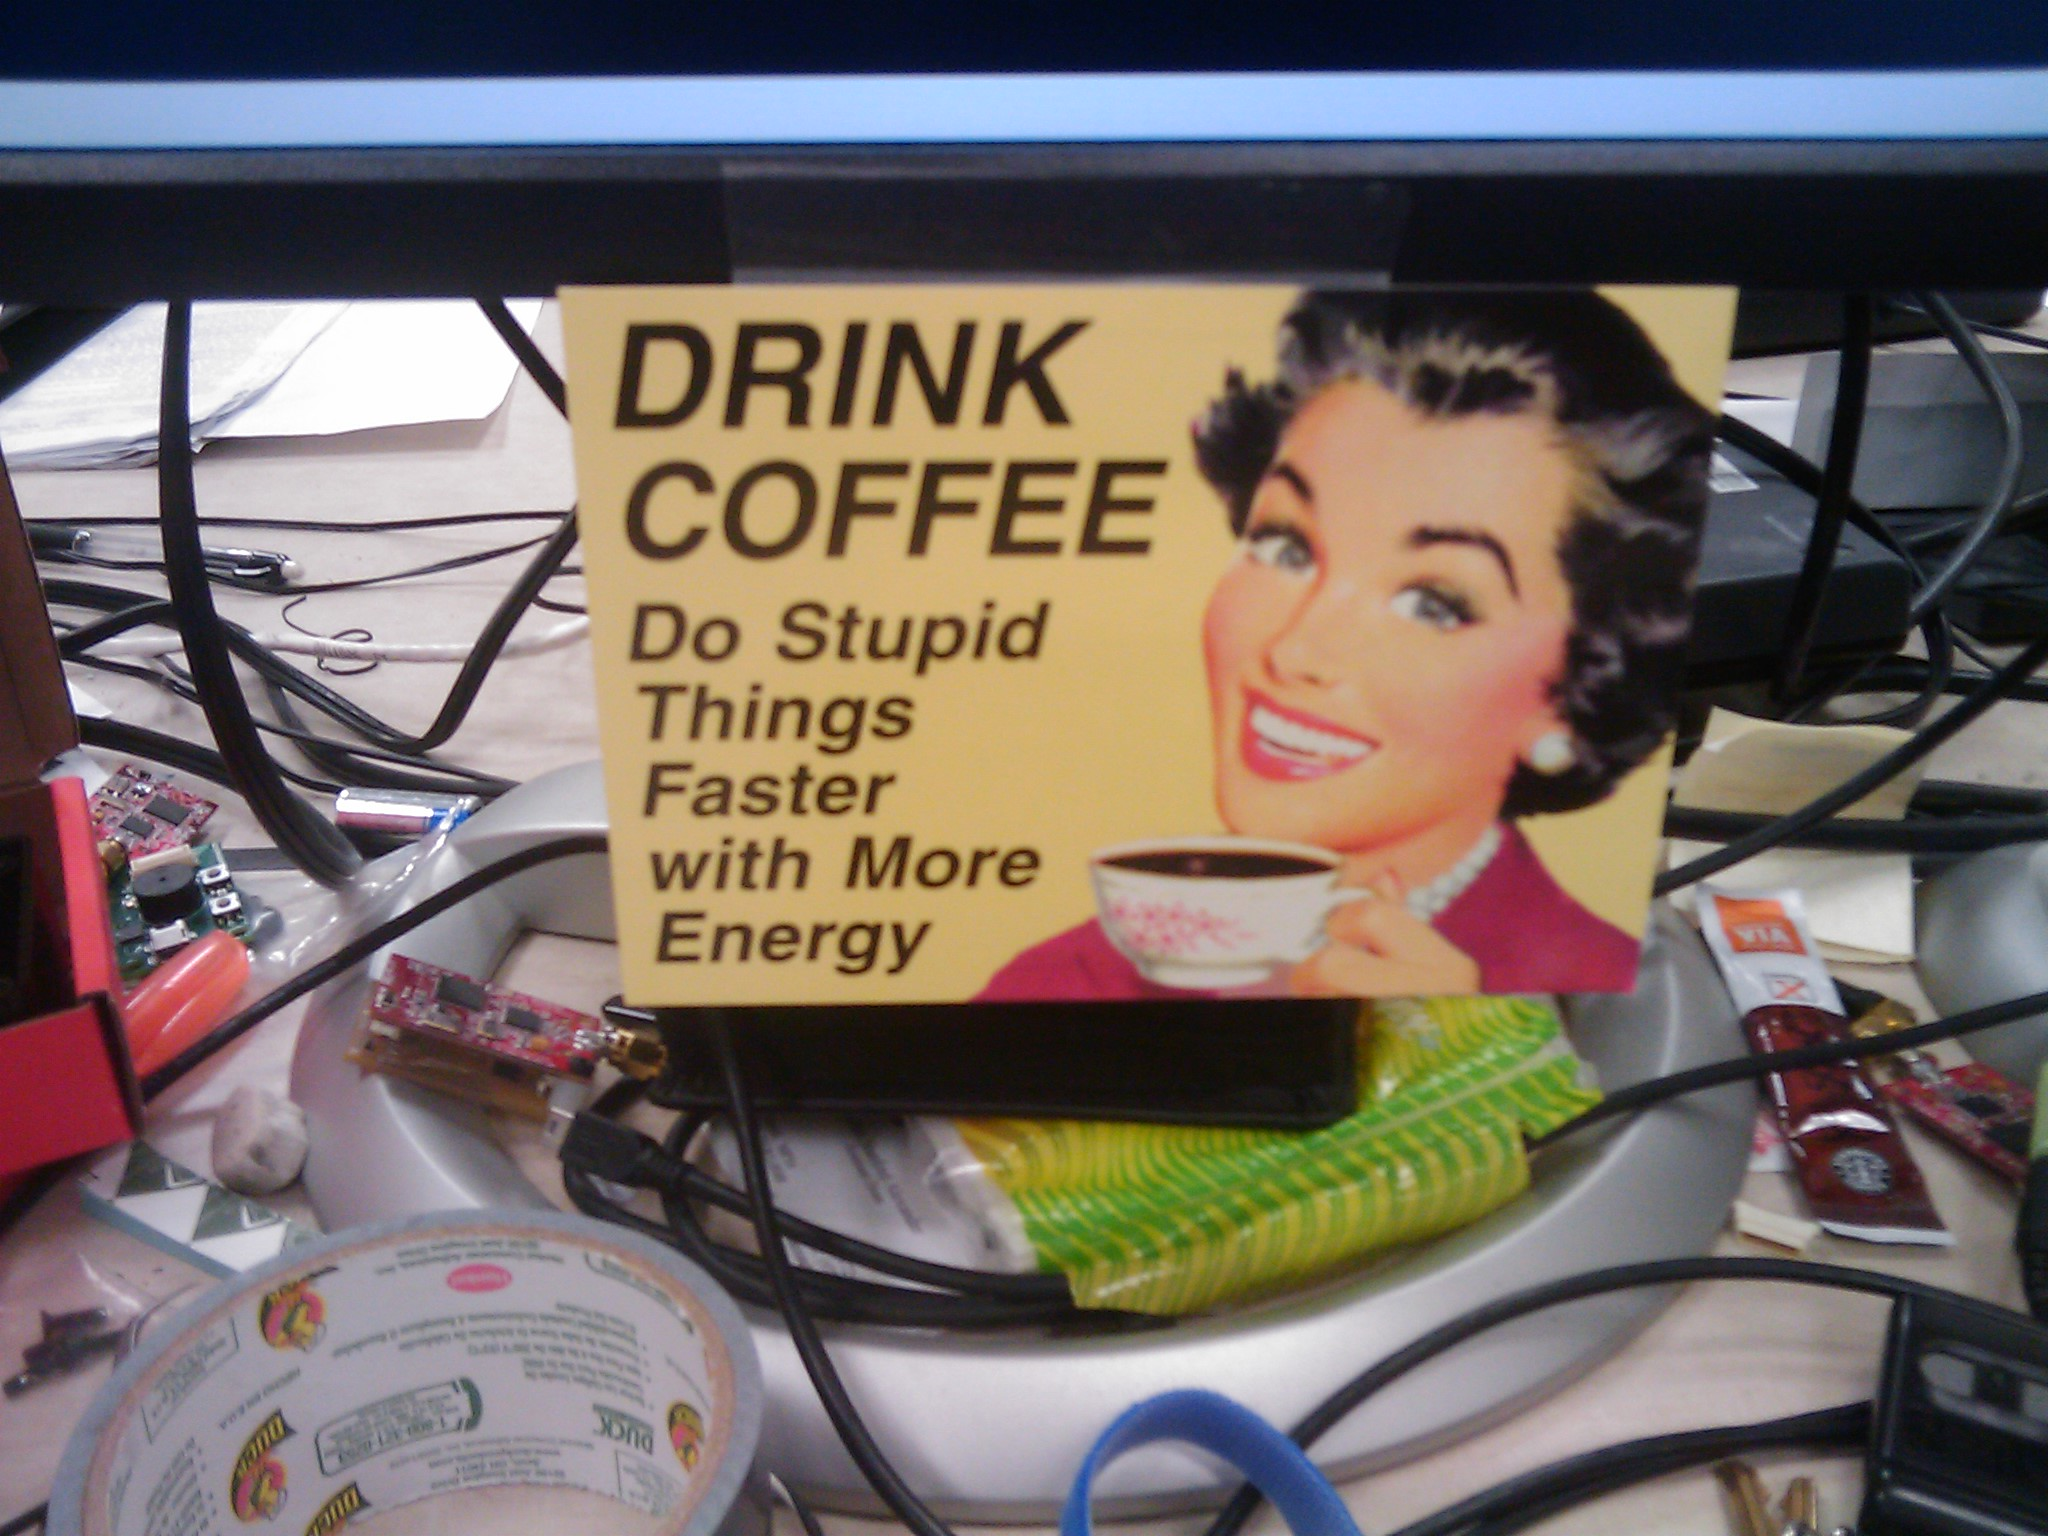 Drink Coffee; Do stupid things faster with more energy